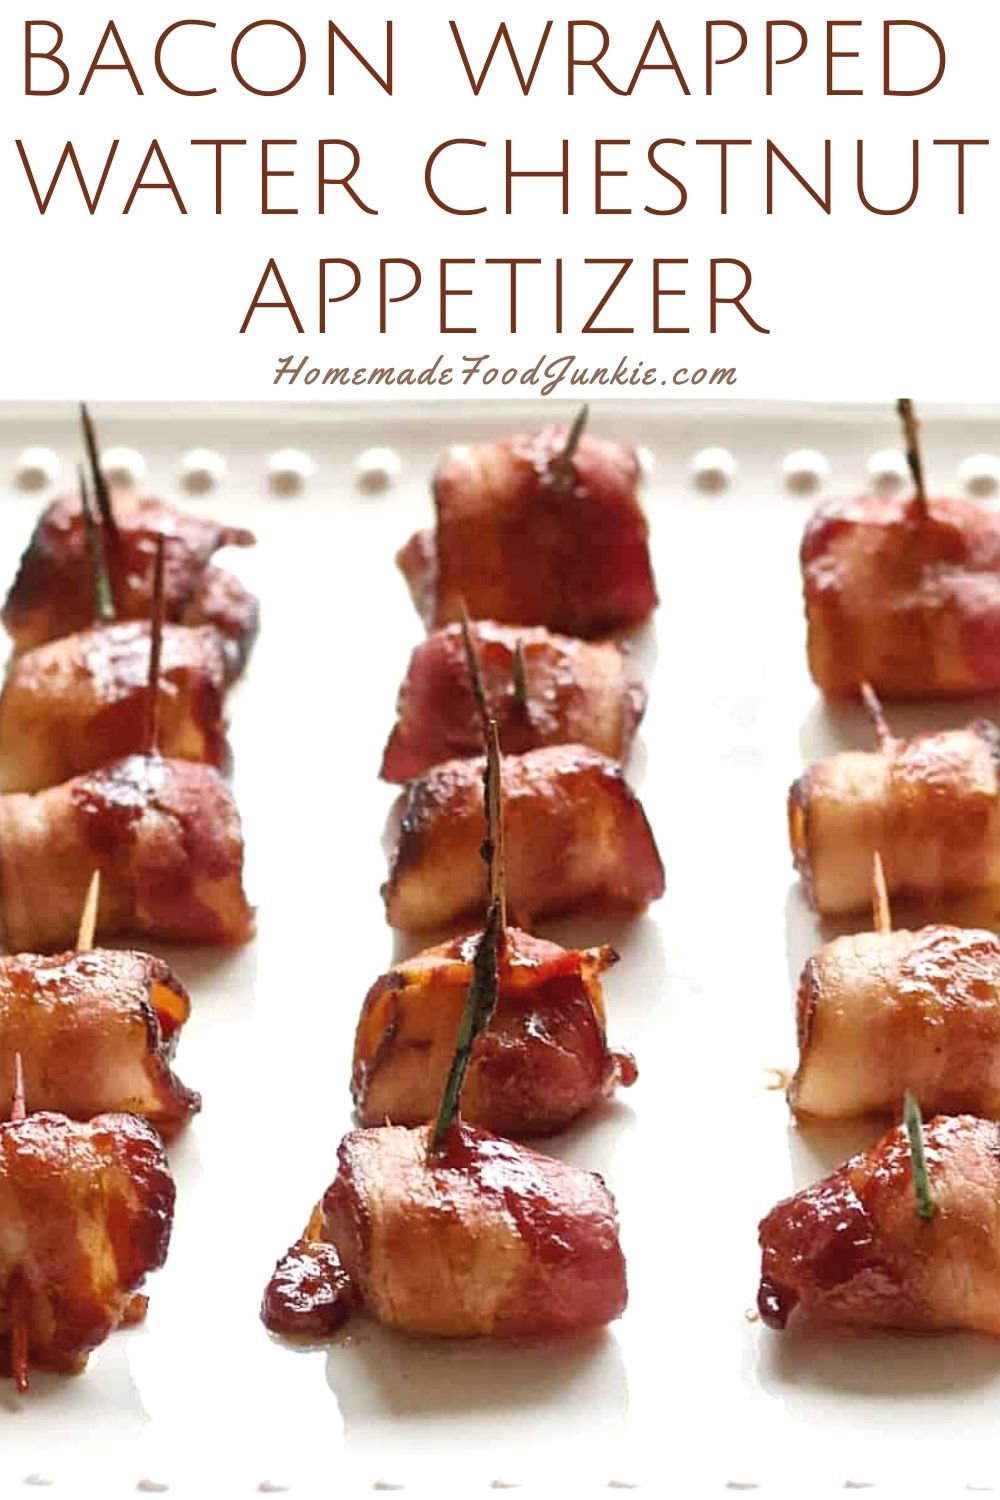 Bacon wrapped water chestnut appetizer-pin image